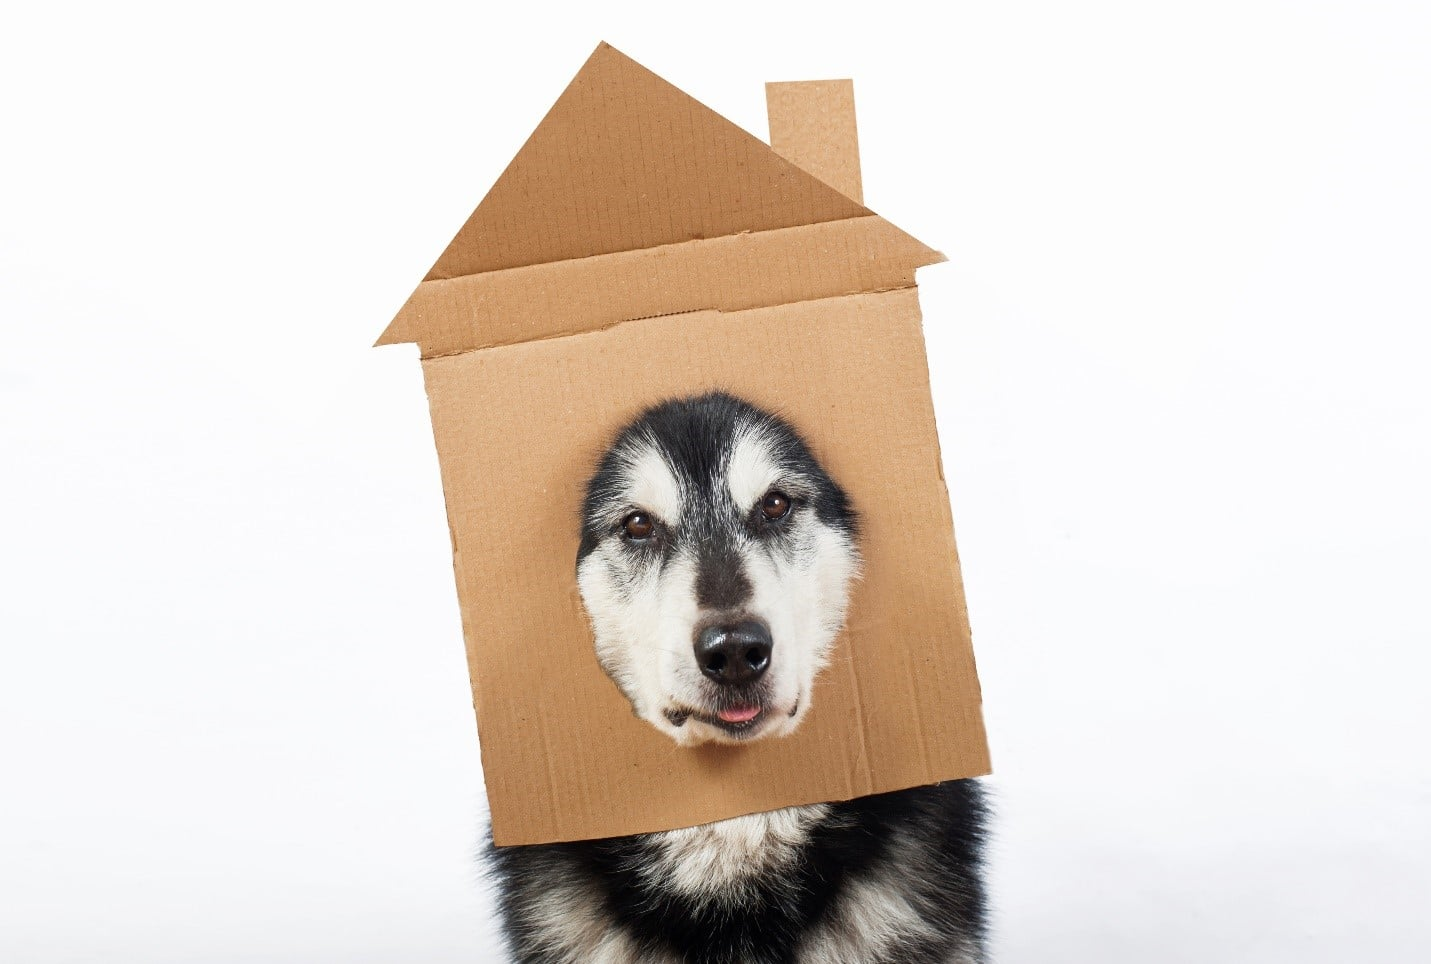 Dog with house mask